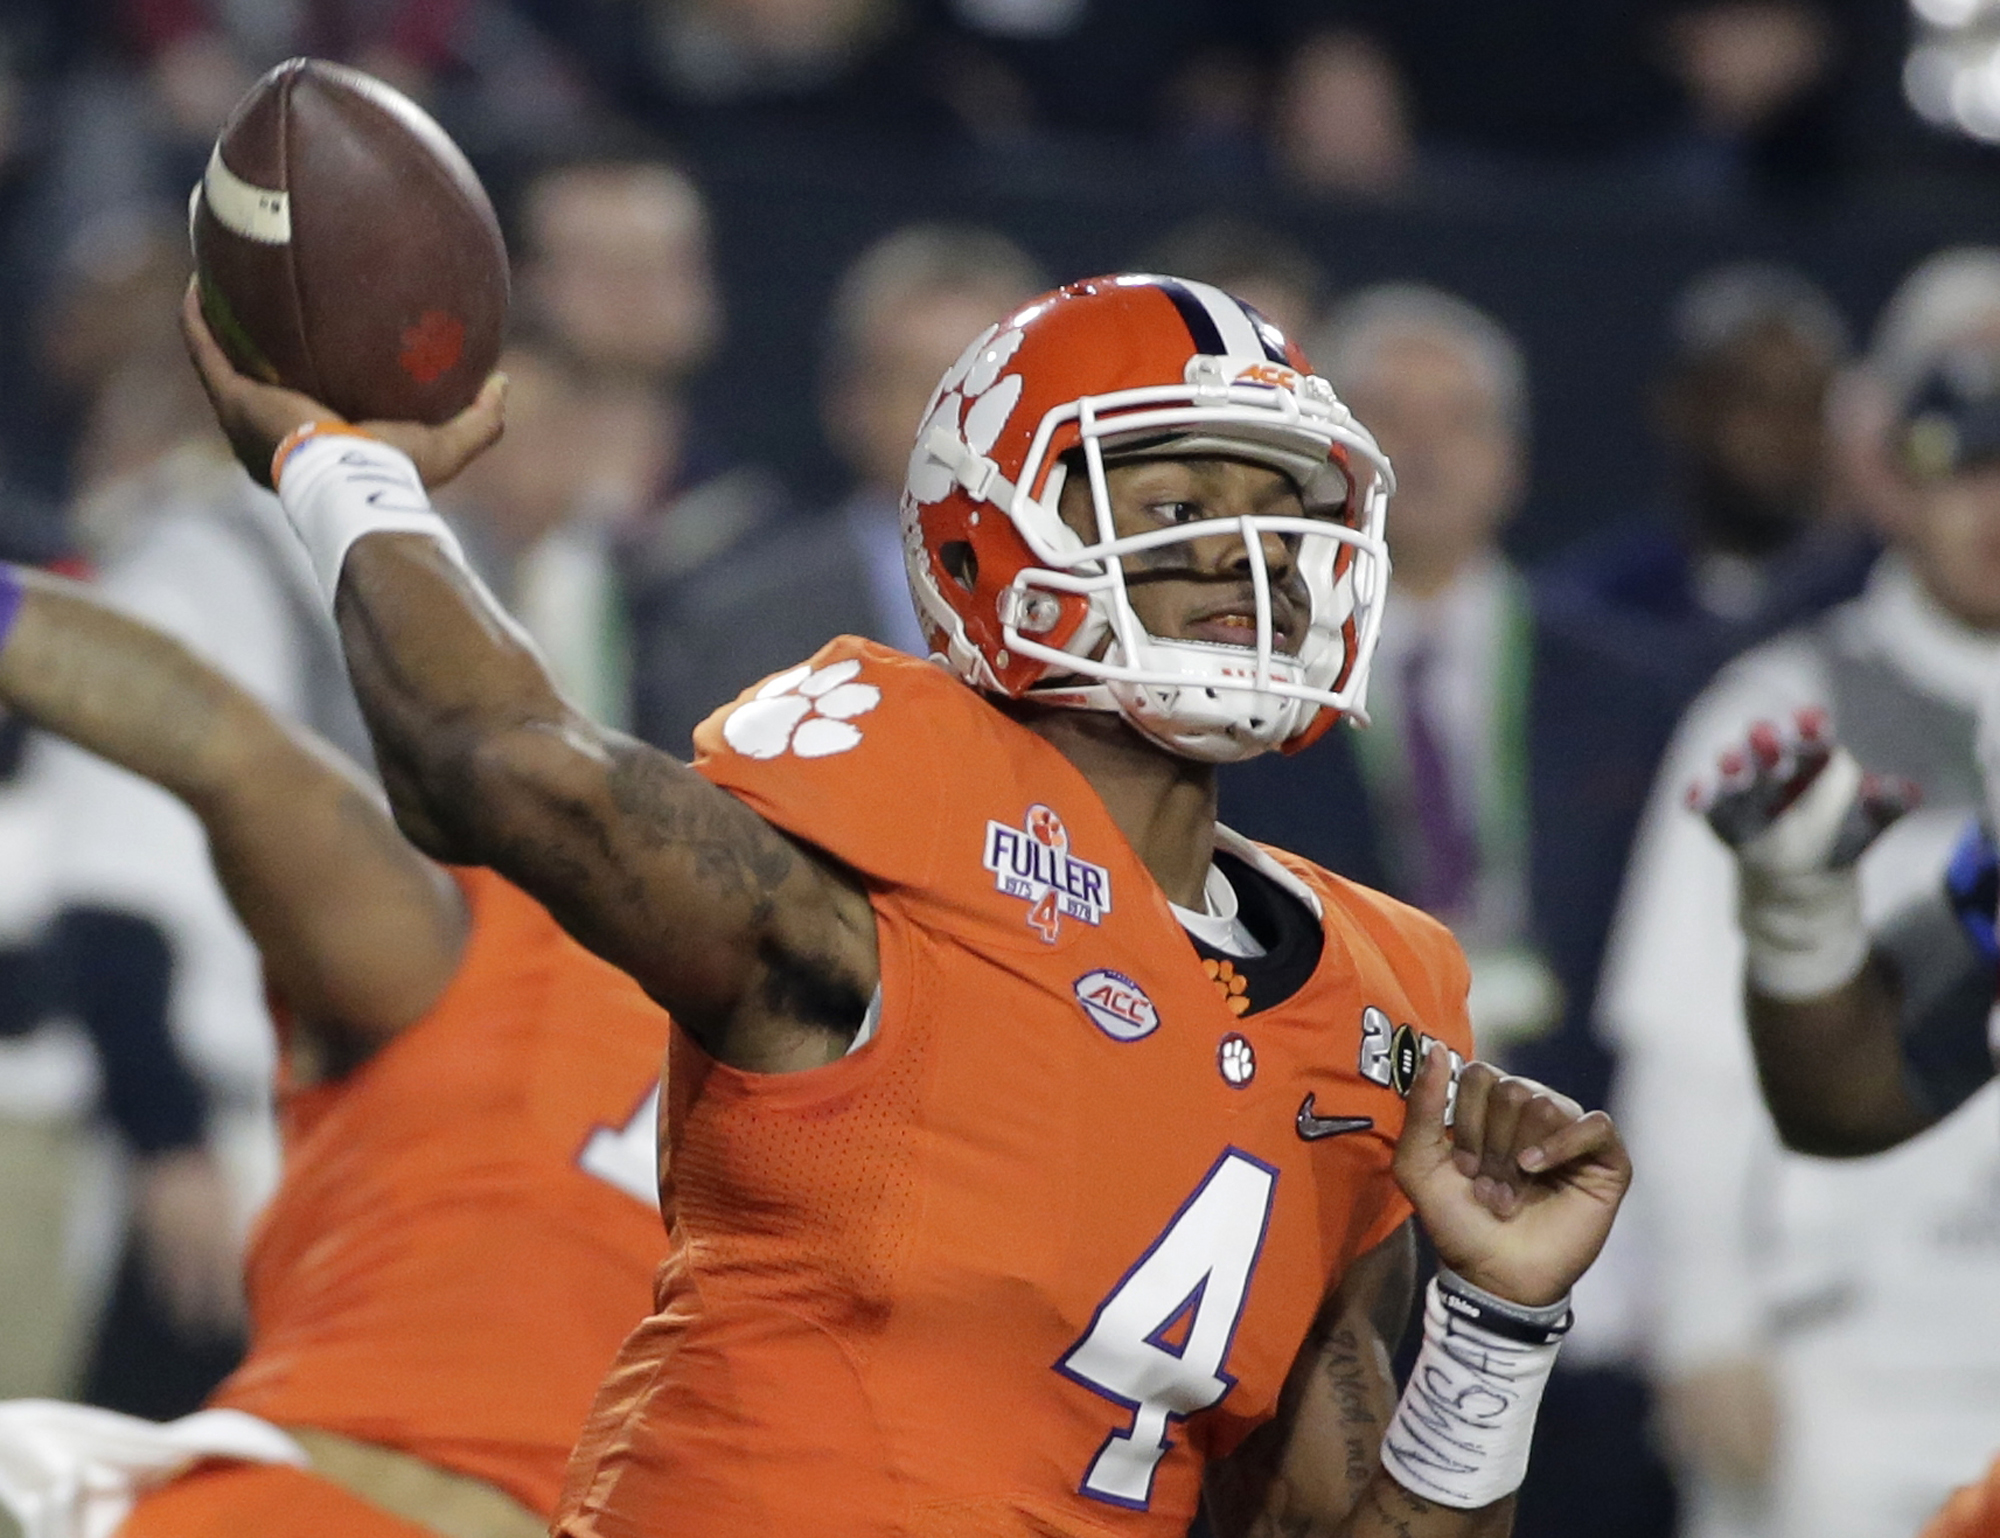 Clemson quarterback Deshaun Watson throws during the first half of the NCAA college football playoff championship game against Alabama Monday, Jan. 11, 2016, in Glendale, Ariz. (AP Photo/Chris Carlson)